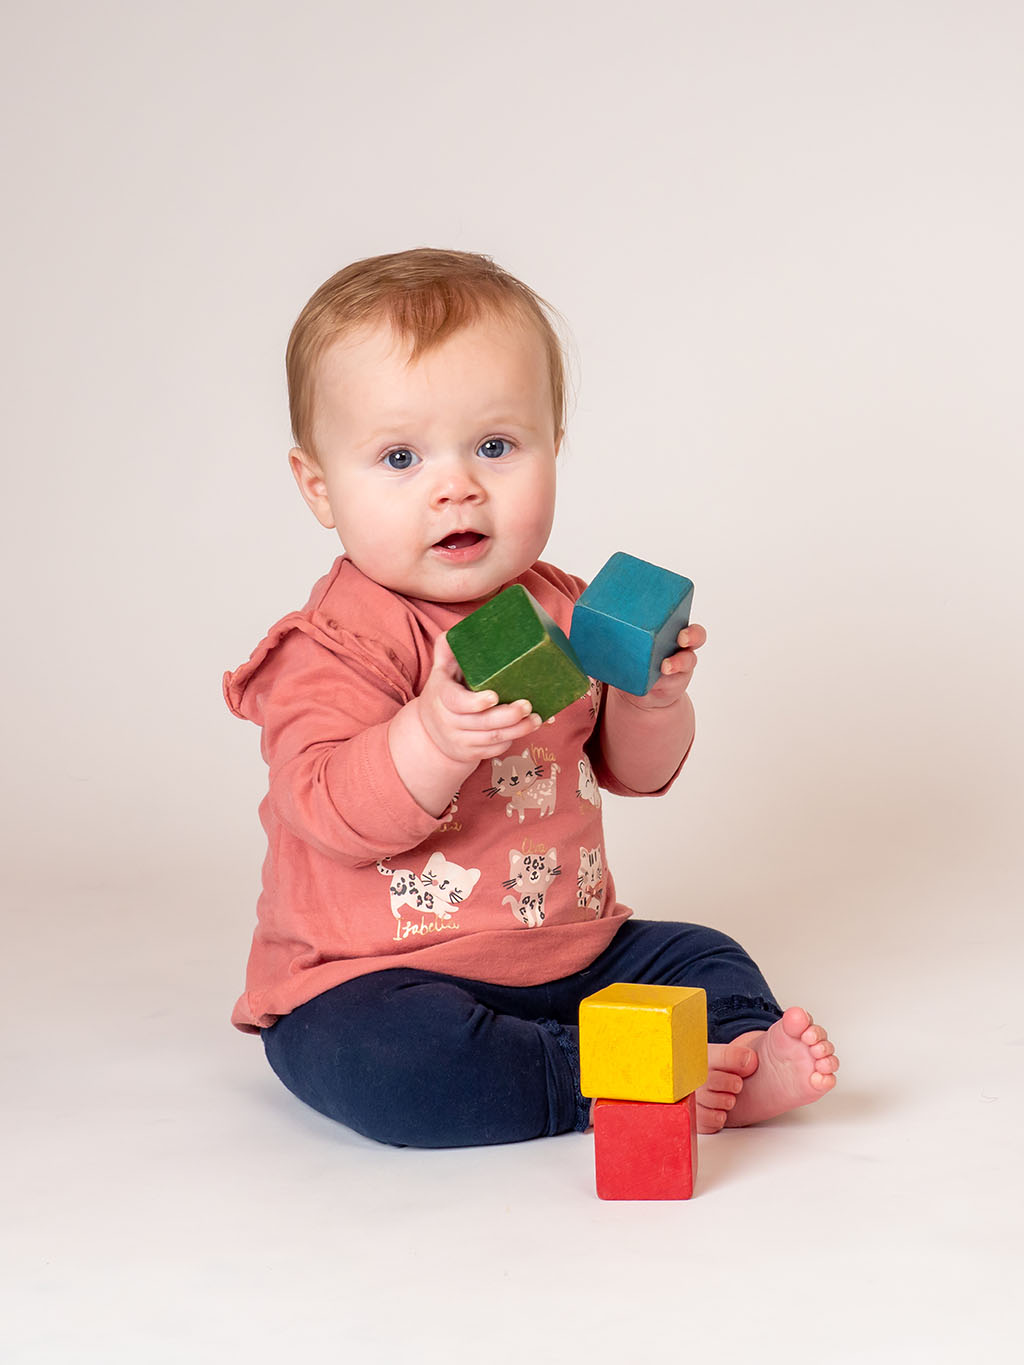 9 month old baby girl playing with wooden colourful bricks sitting on the floor taken by qualified baby photographer in Braintree, Essex